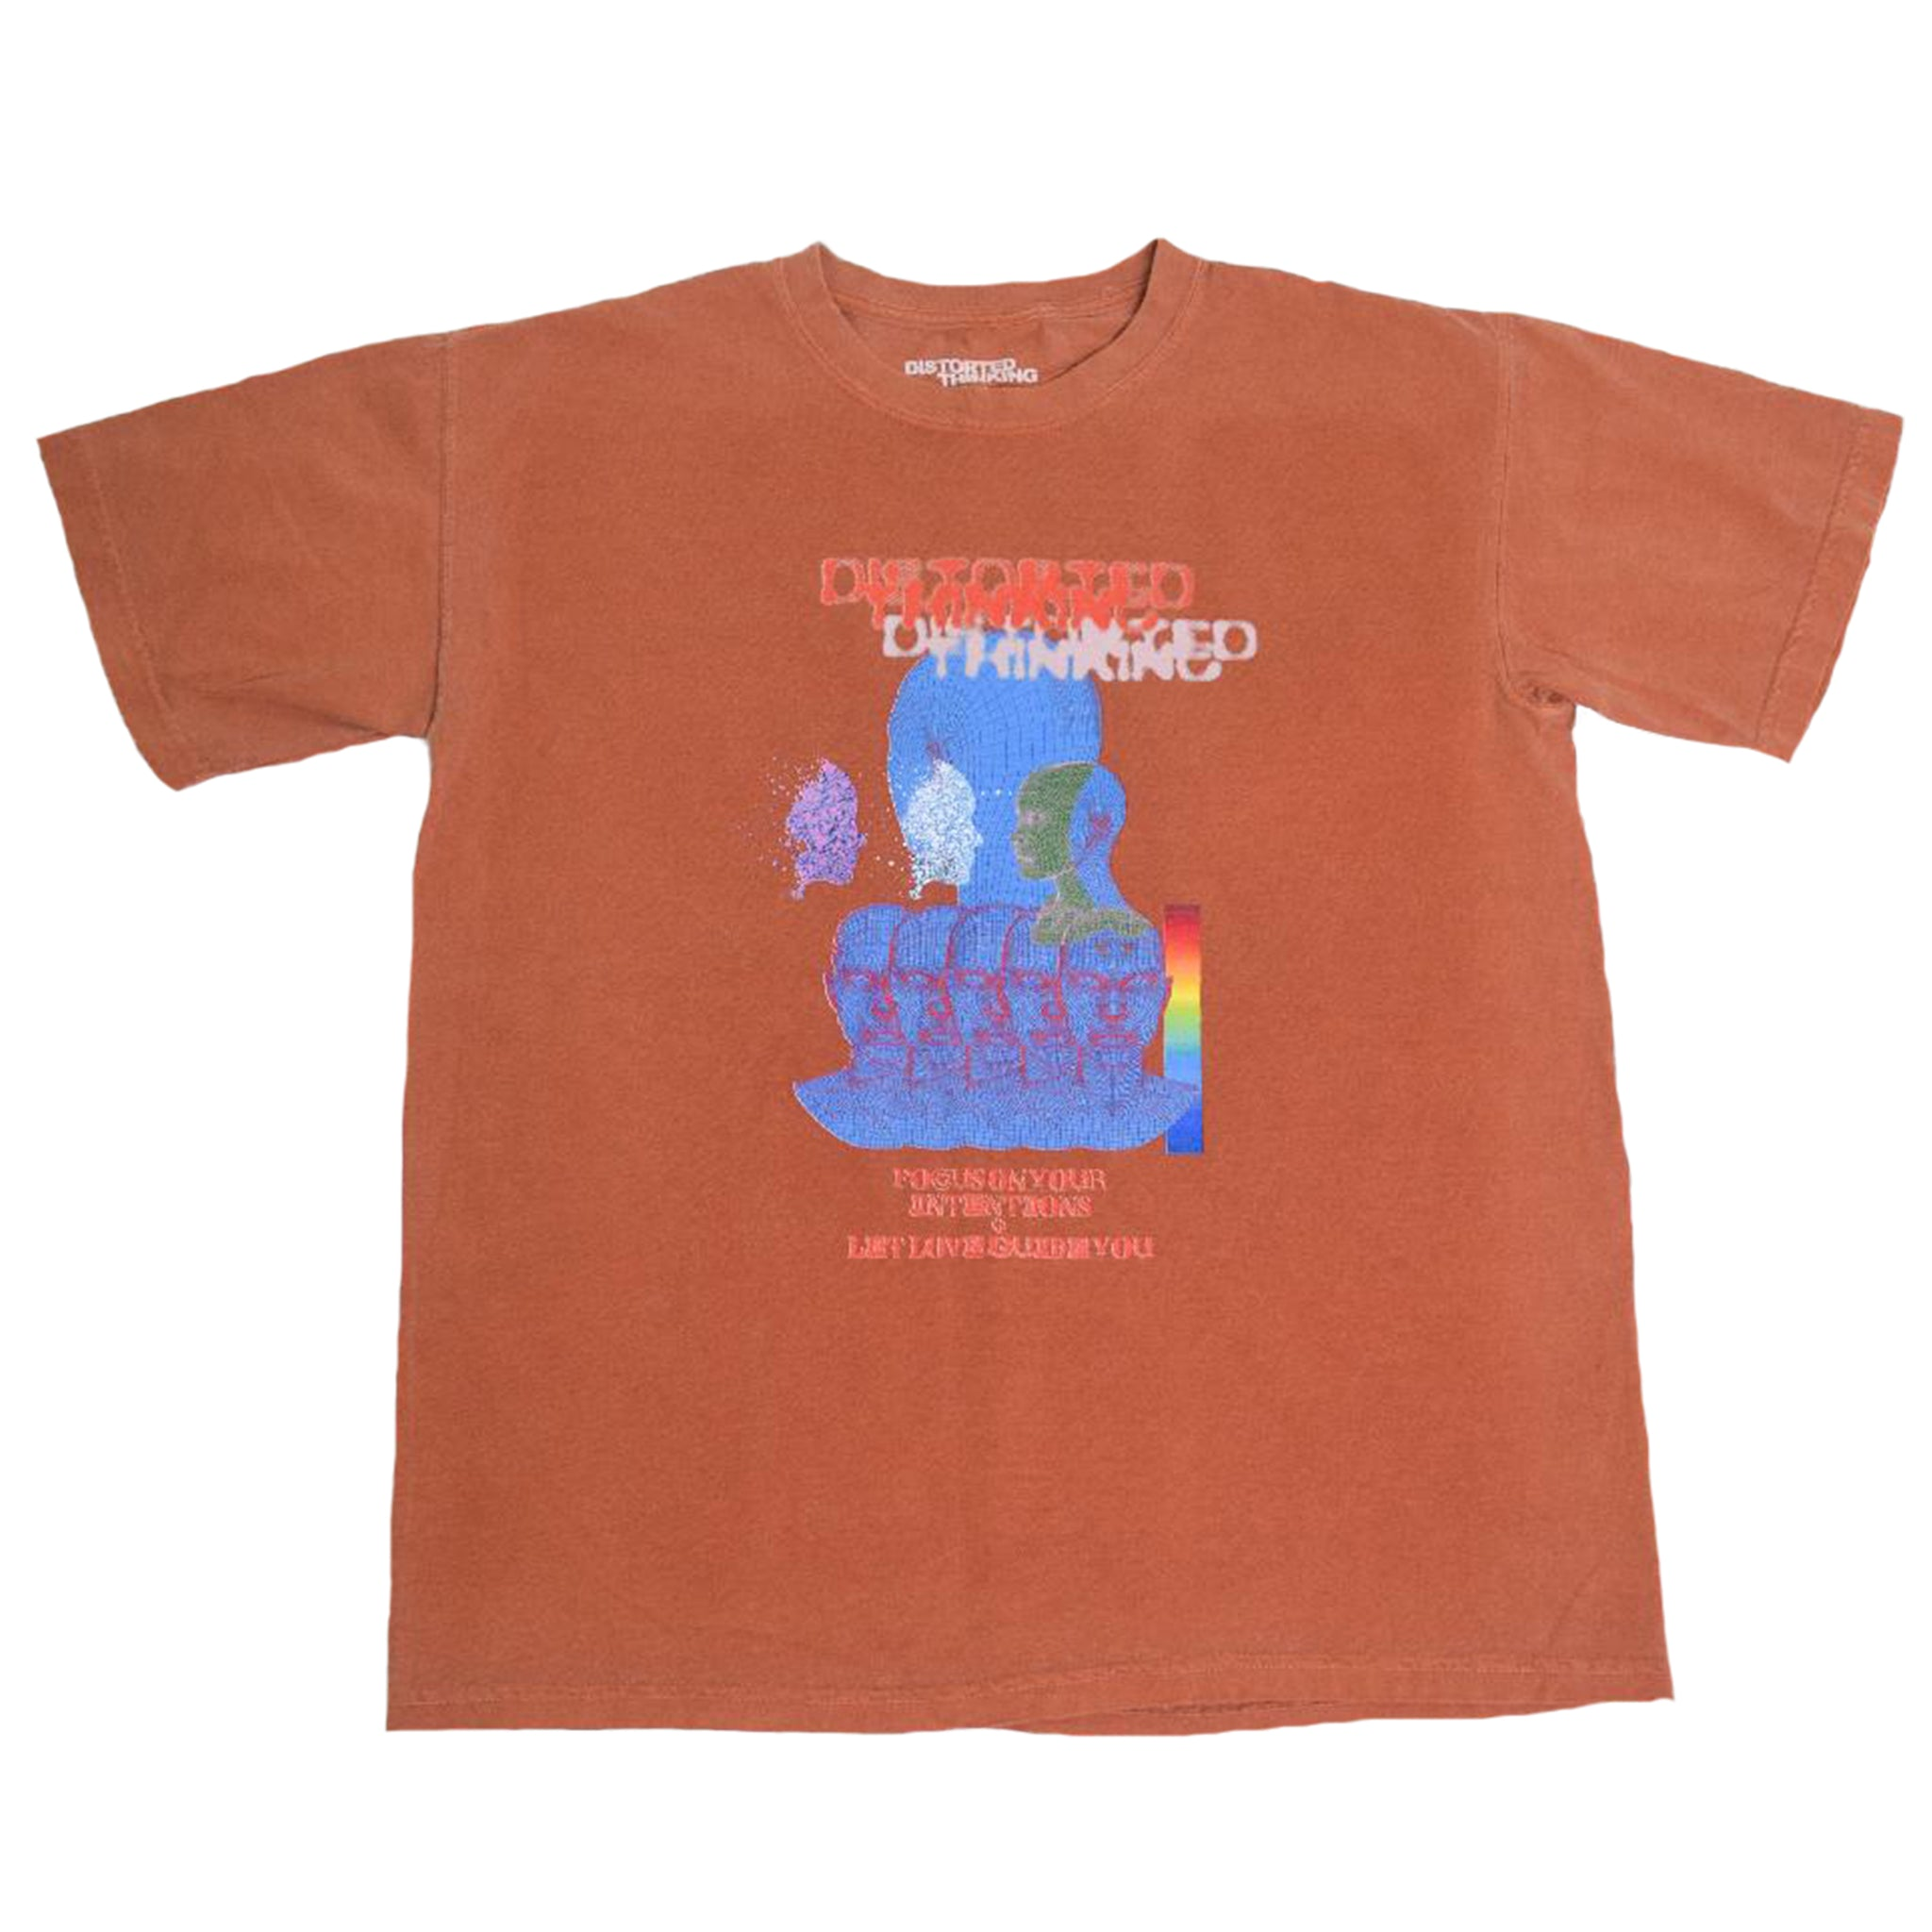 Intentions T-Shirt - Burnt Orange